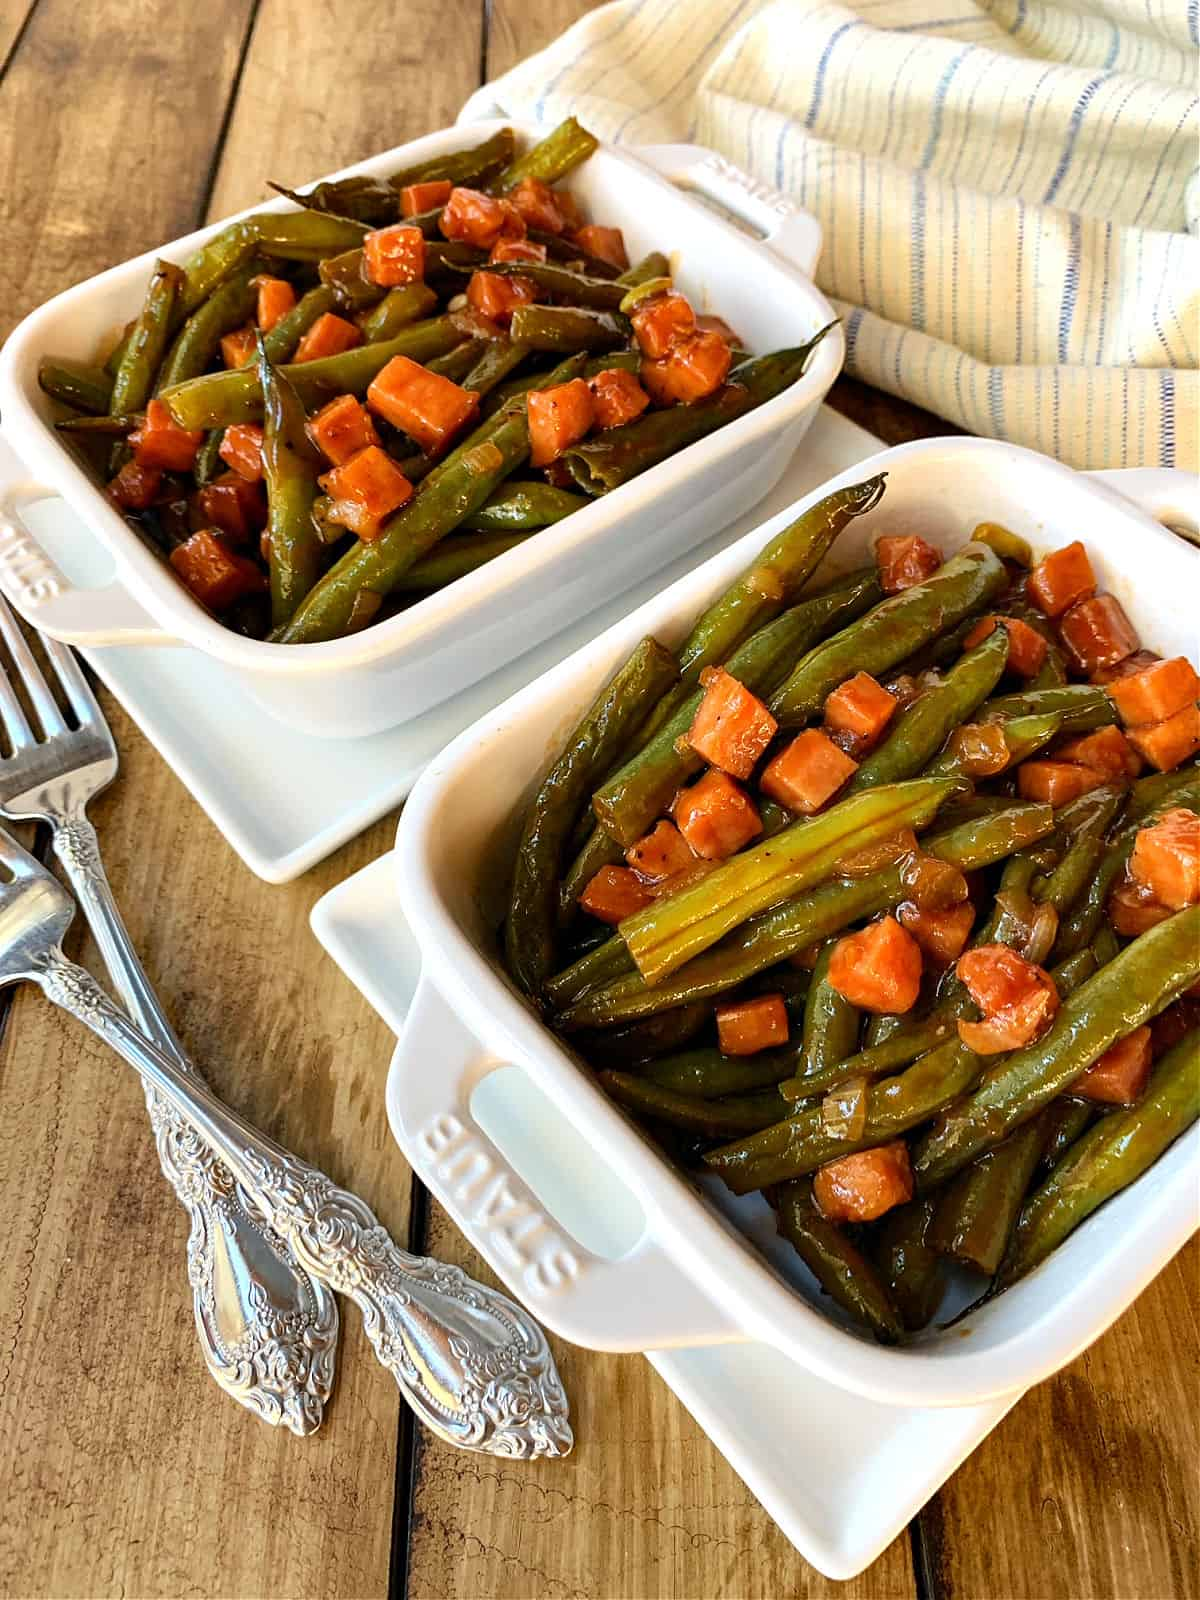 Green beans in two white casserole dishes.